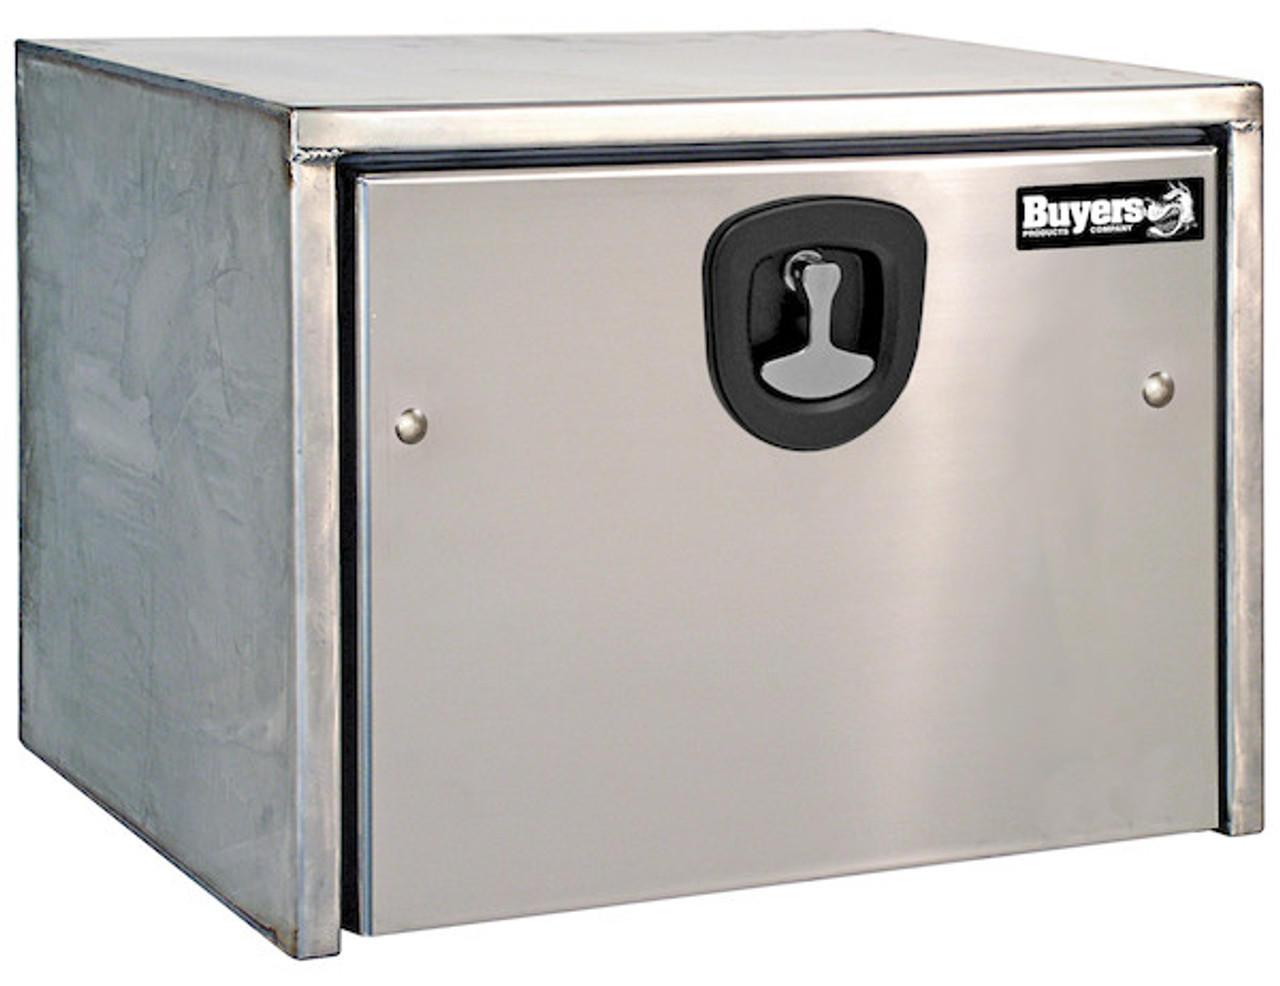 1702595 BUYERS PRODUCTS STAINLESS STEEL UNDERBODY TRUCK BOX WITH POLISHED STAINLESS STEEL DOOR TOOLBOX